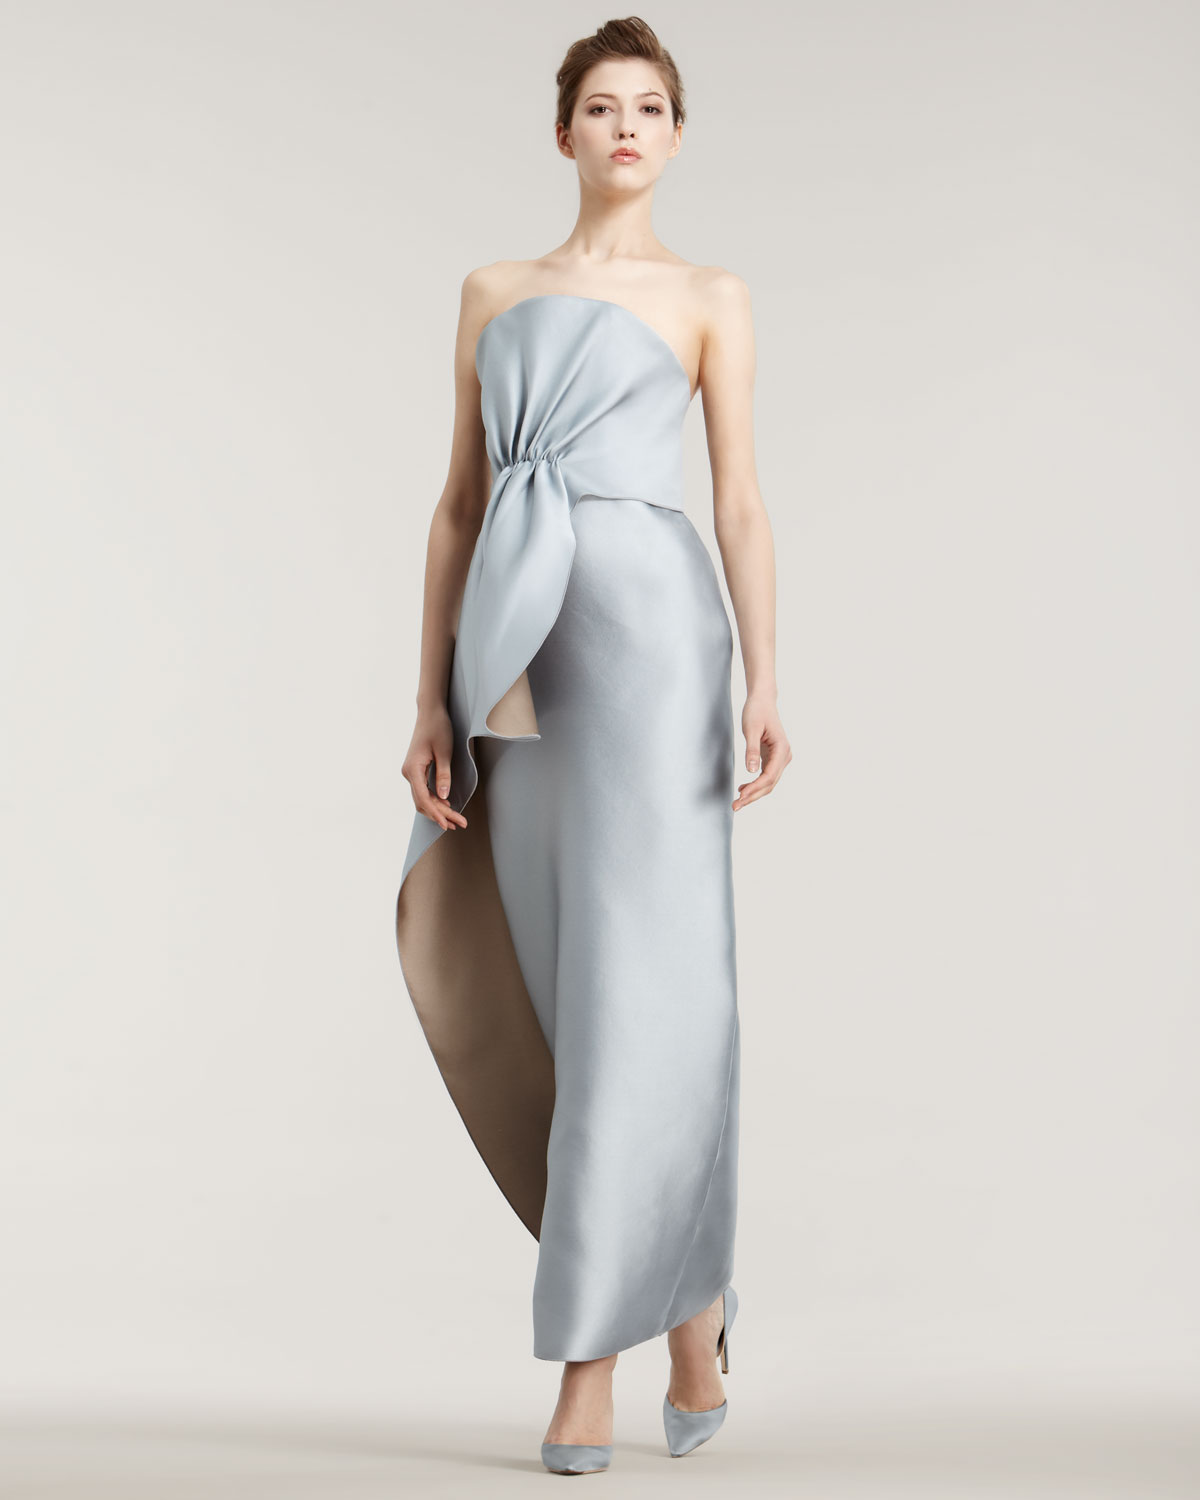 Neiman Marcus Evening Dresses 2012 – fashion dresses